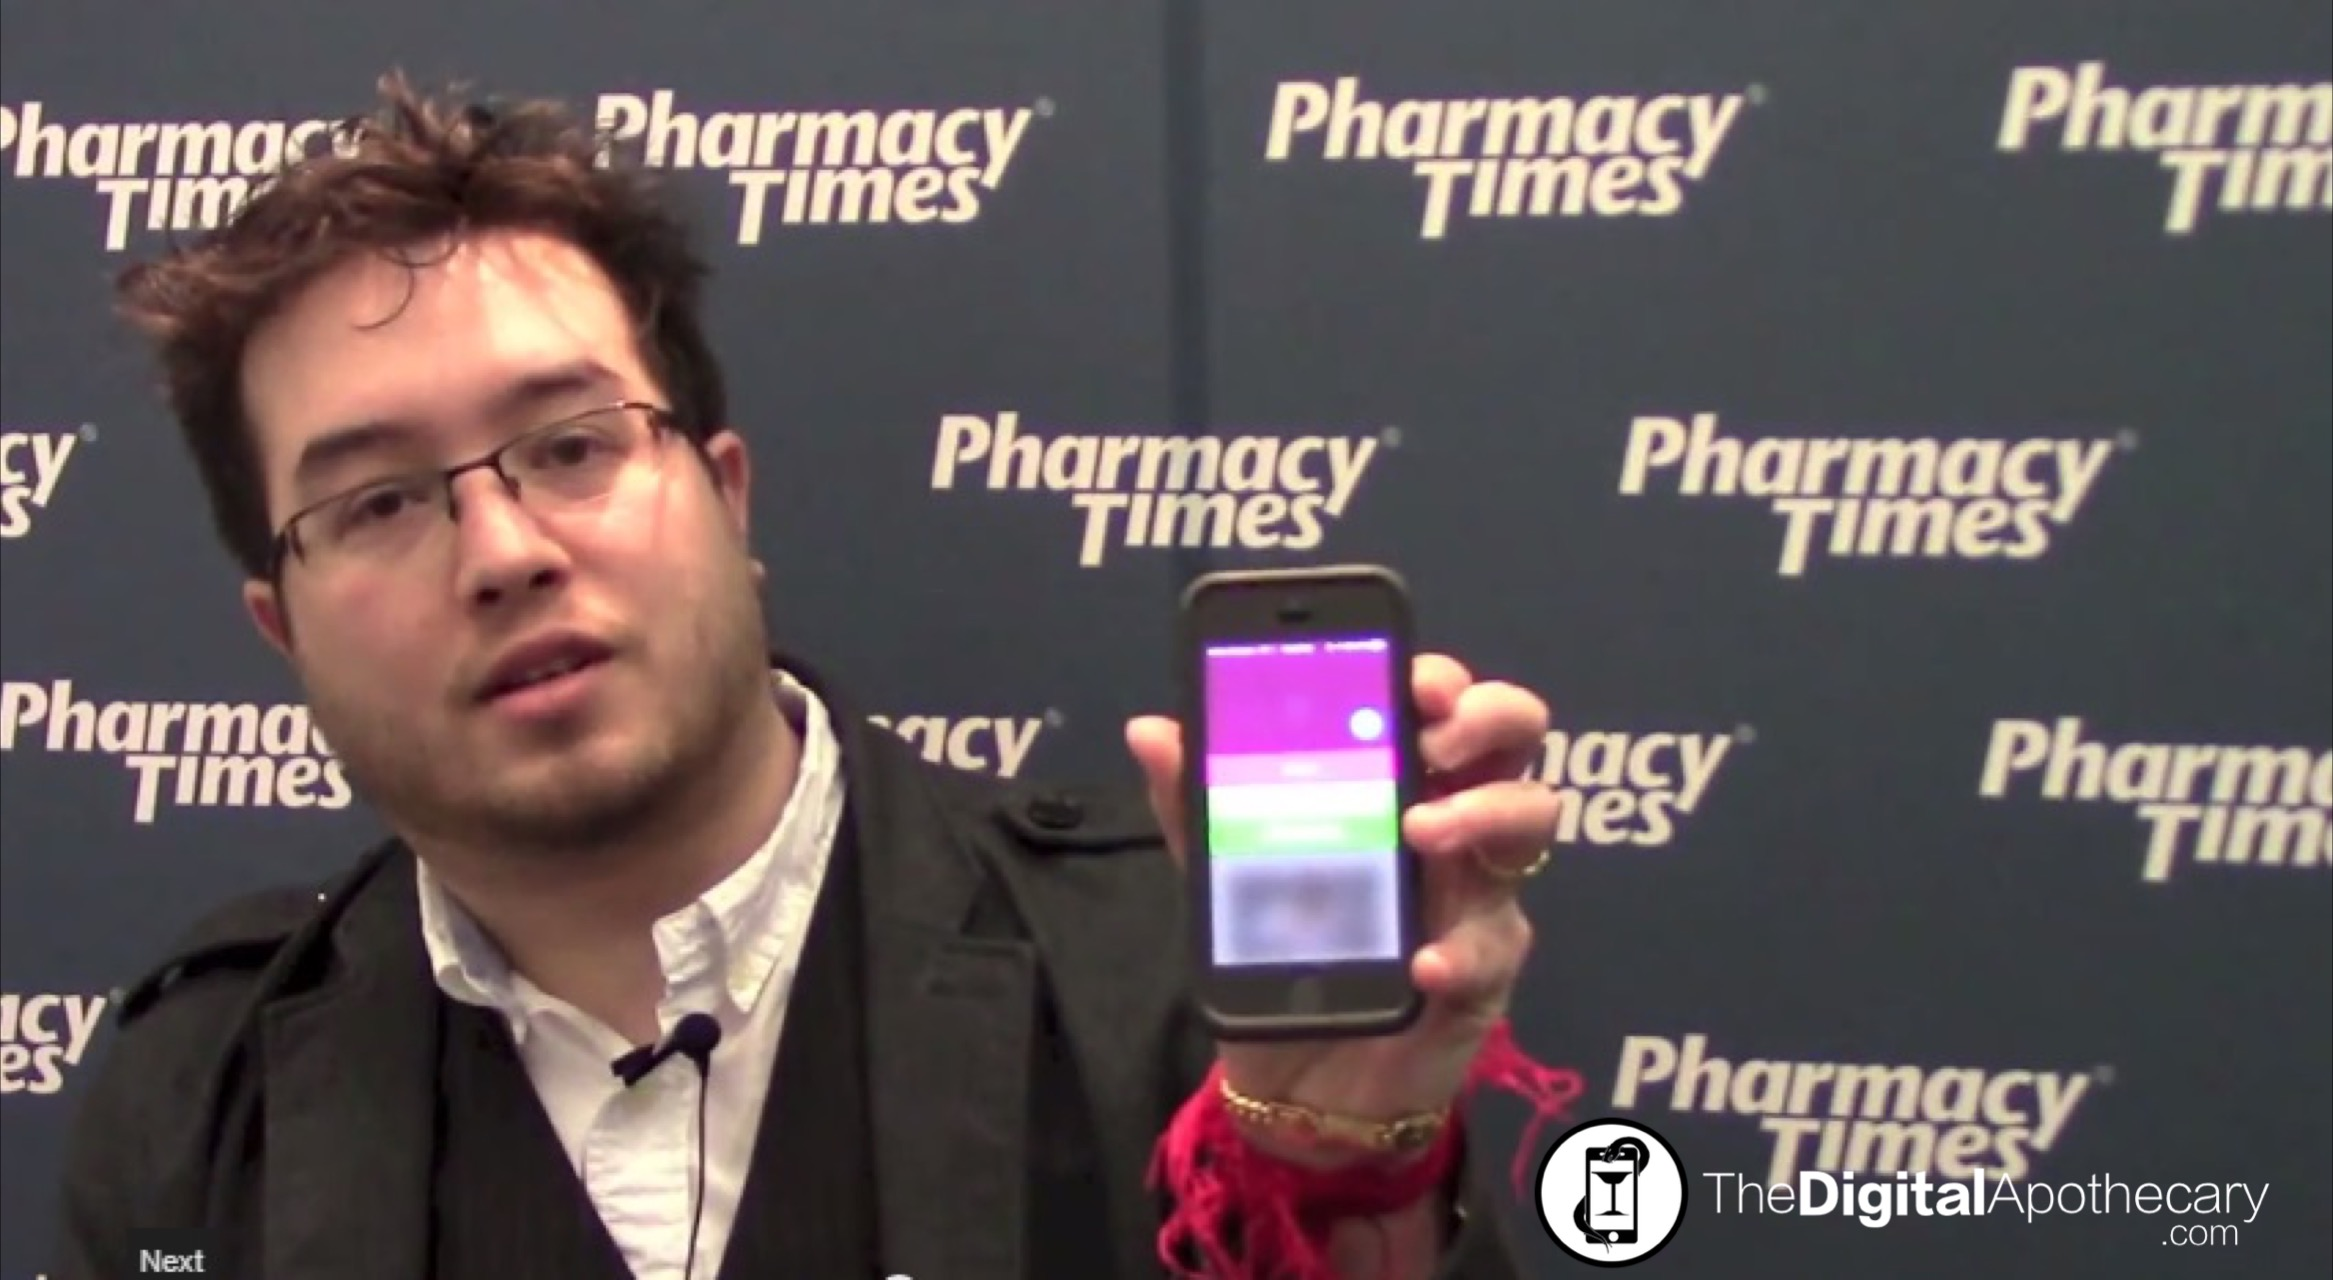 Interview with Pharmacy Times on Digital Health